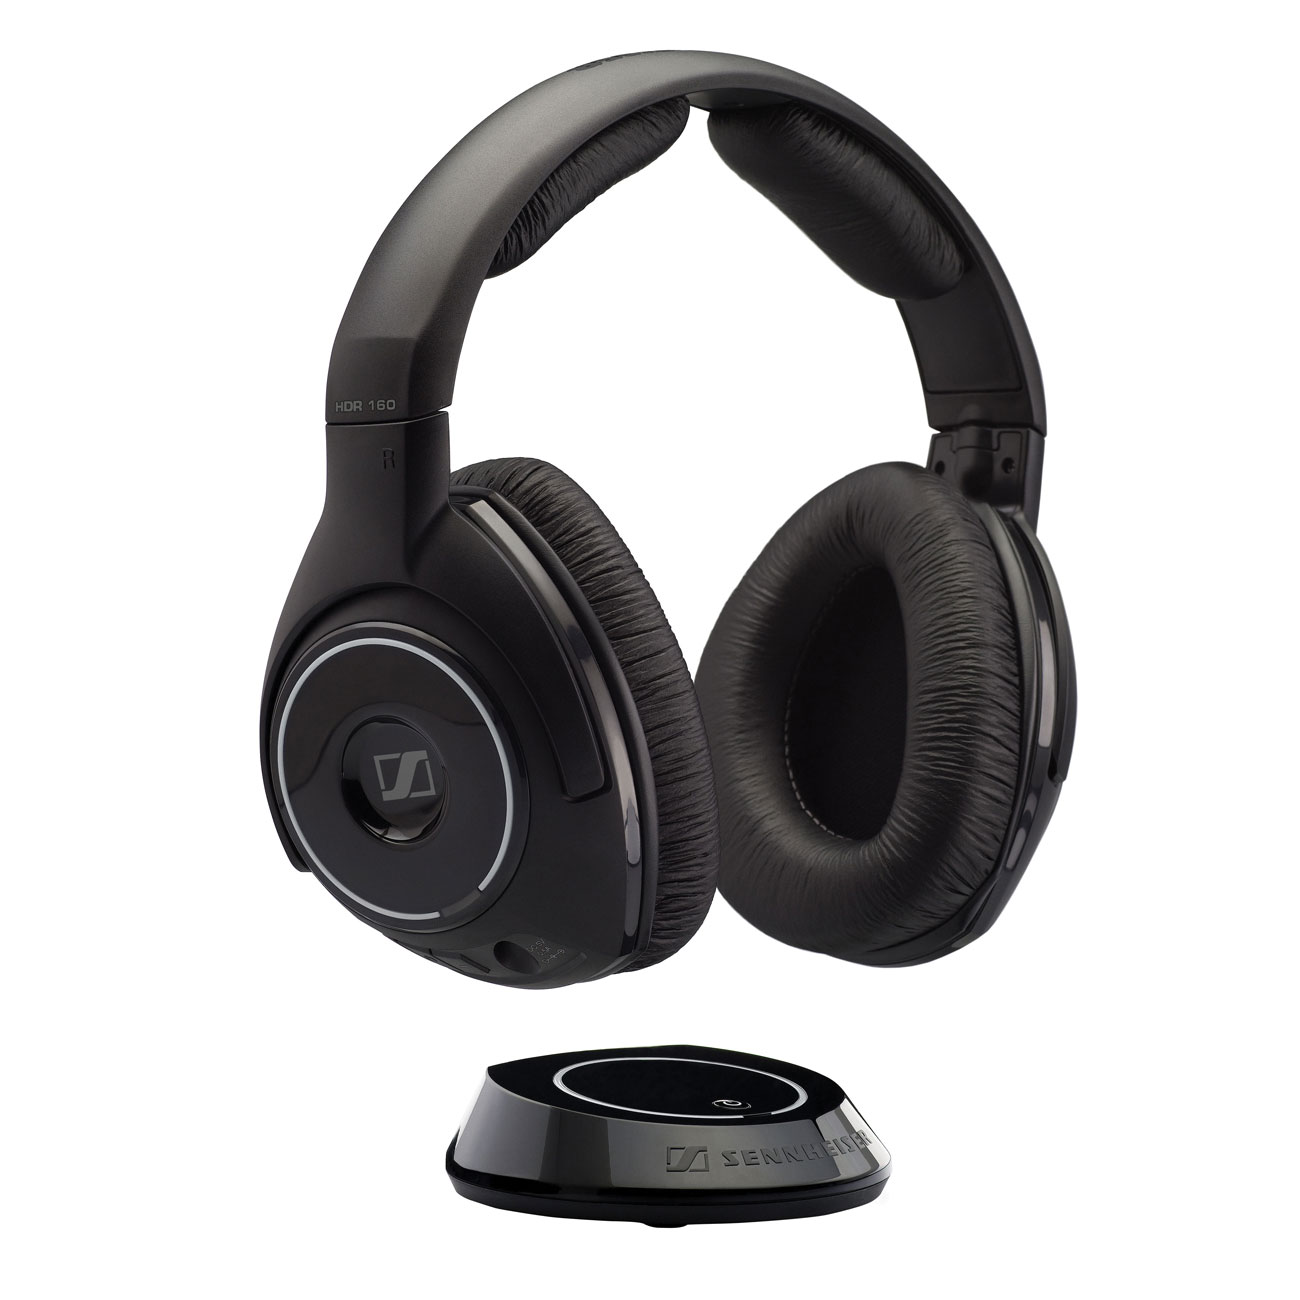 Sennheiser RS 160 TV Digital Wireless Headset Headphones